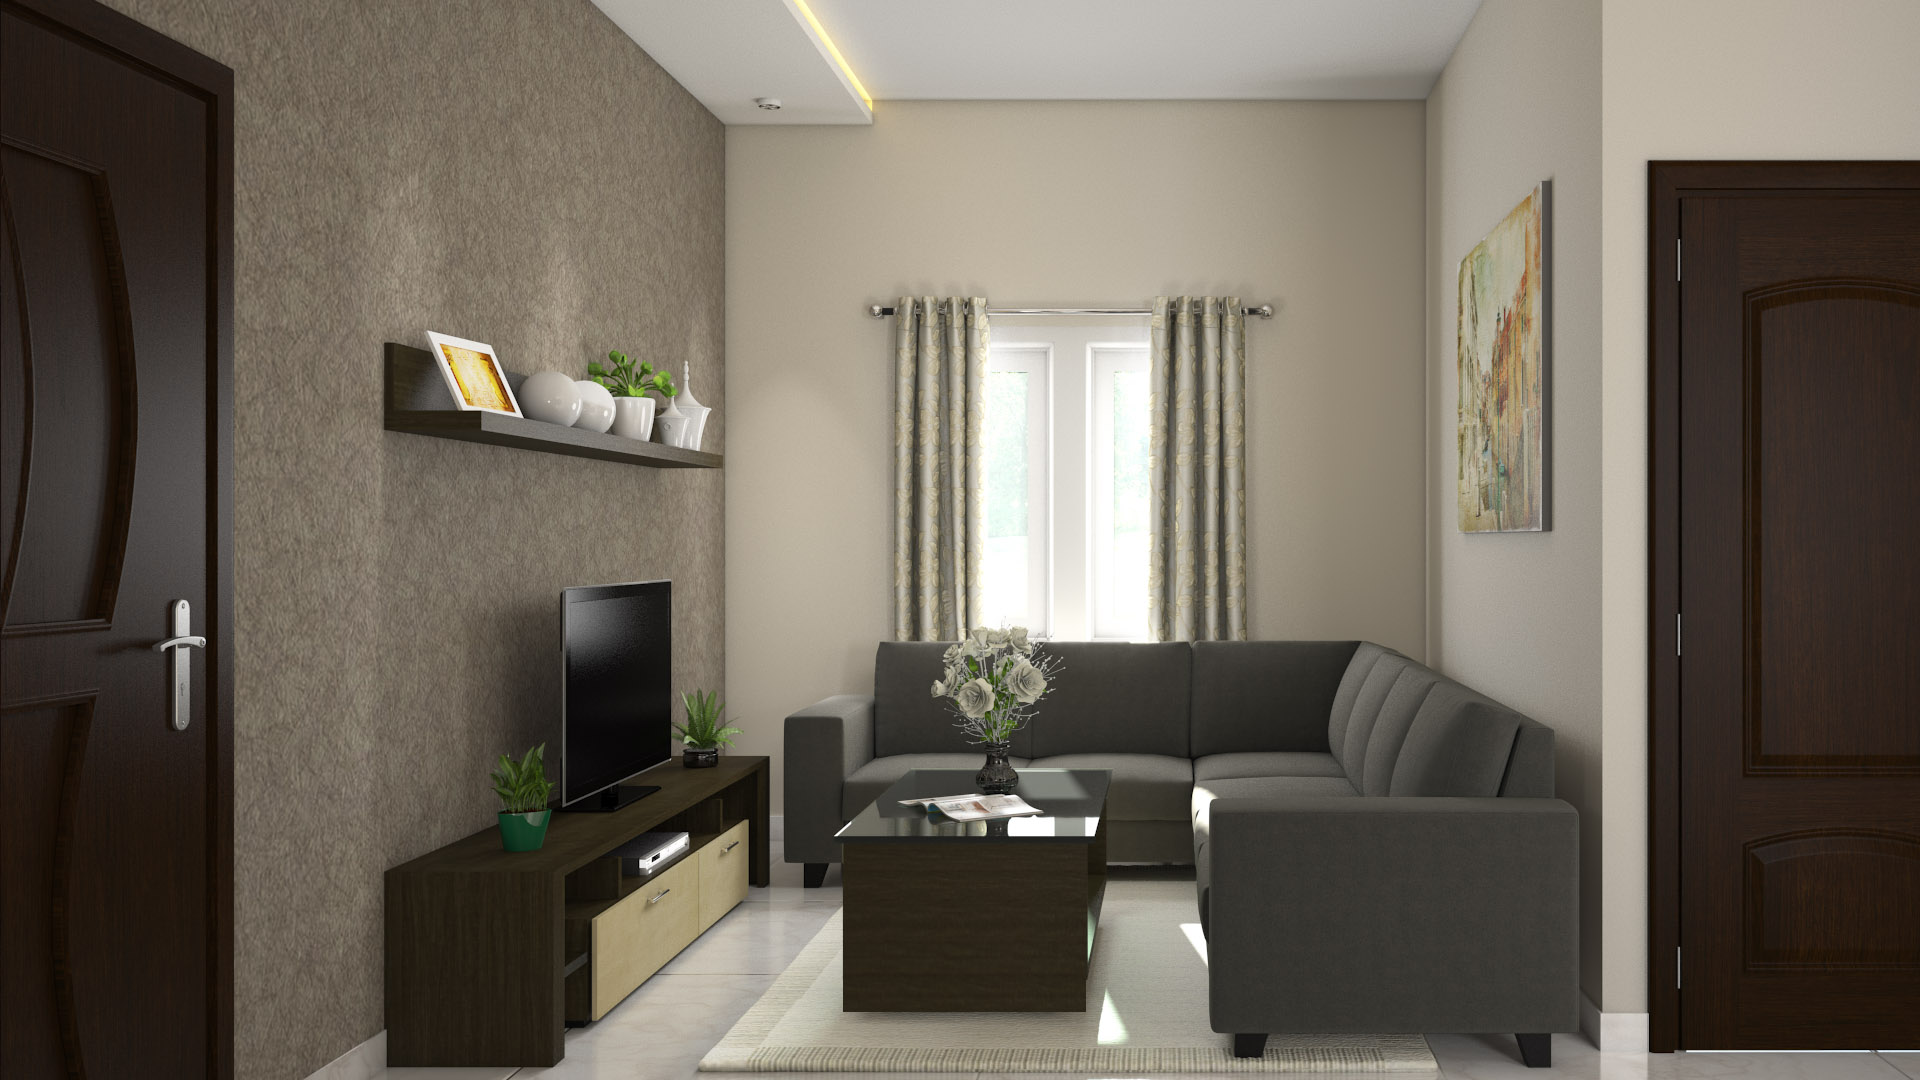 latest modern furniture interior designs On 1 bhk living room interior